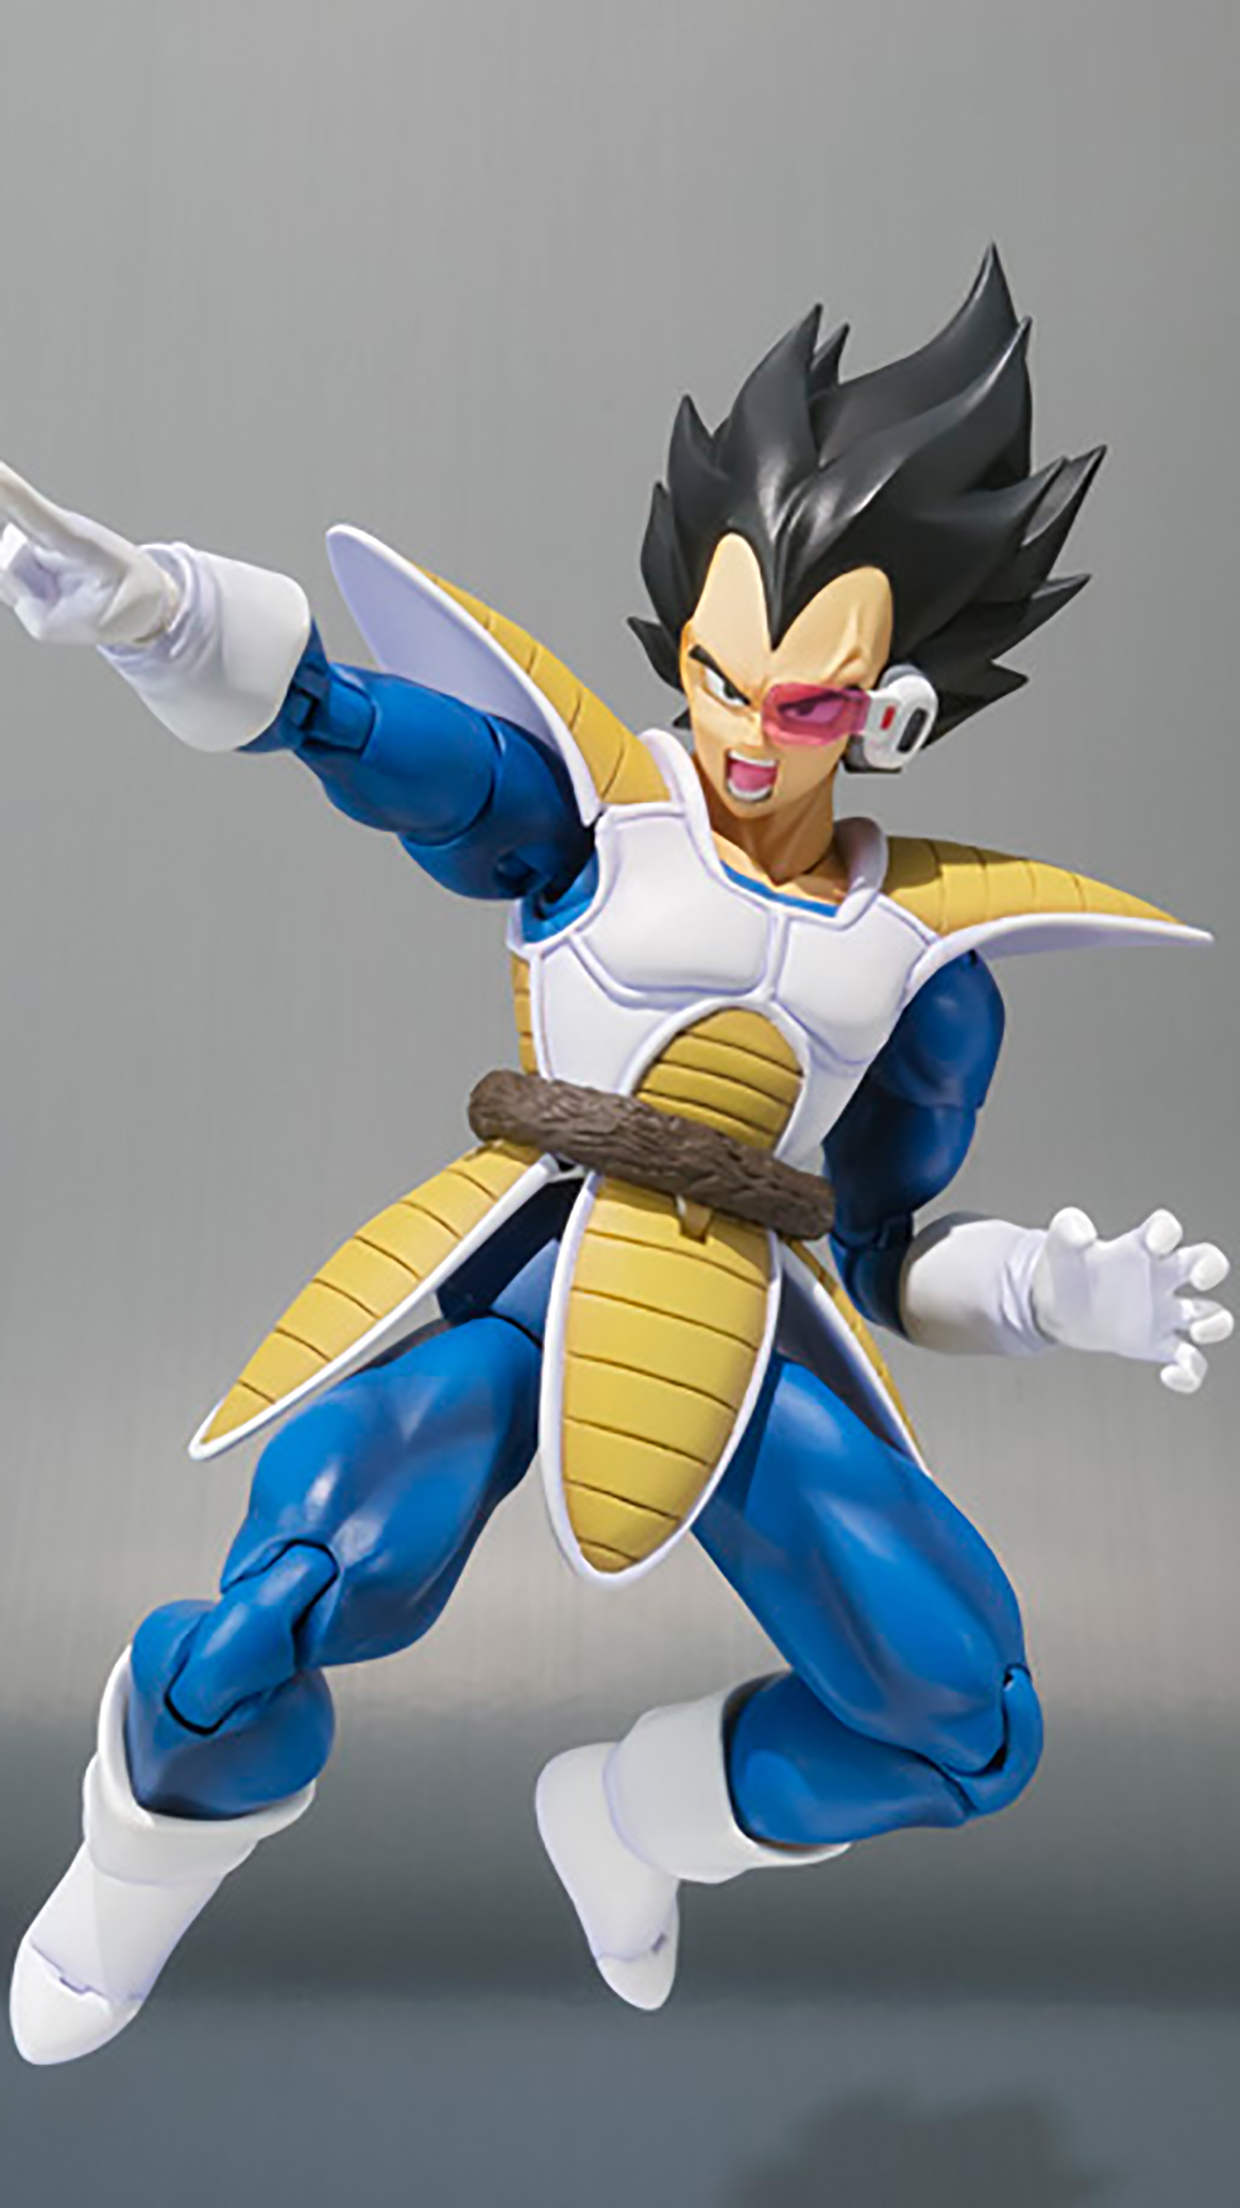 Special Vegeta Pumping 3Wallpapers iPhone Parallax 3Wallpapers : notre sélection de fonds décran du 24/01/2017